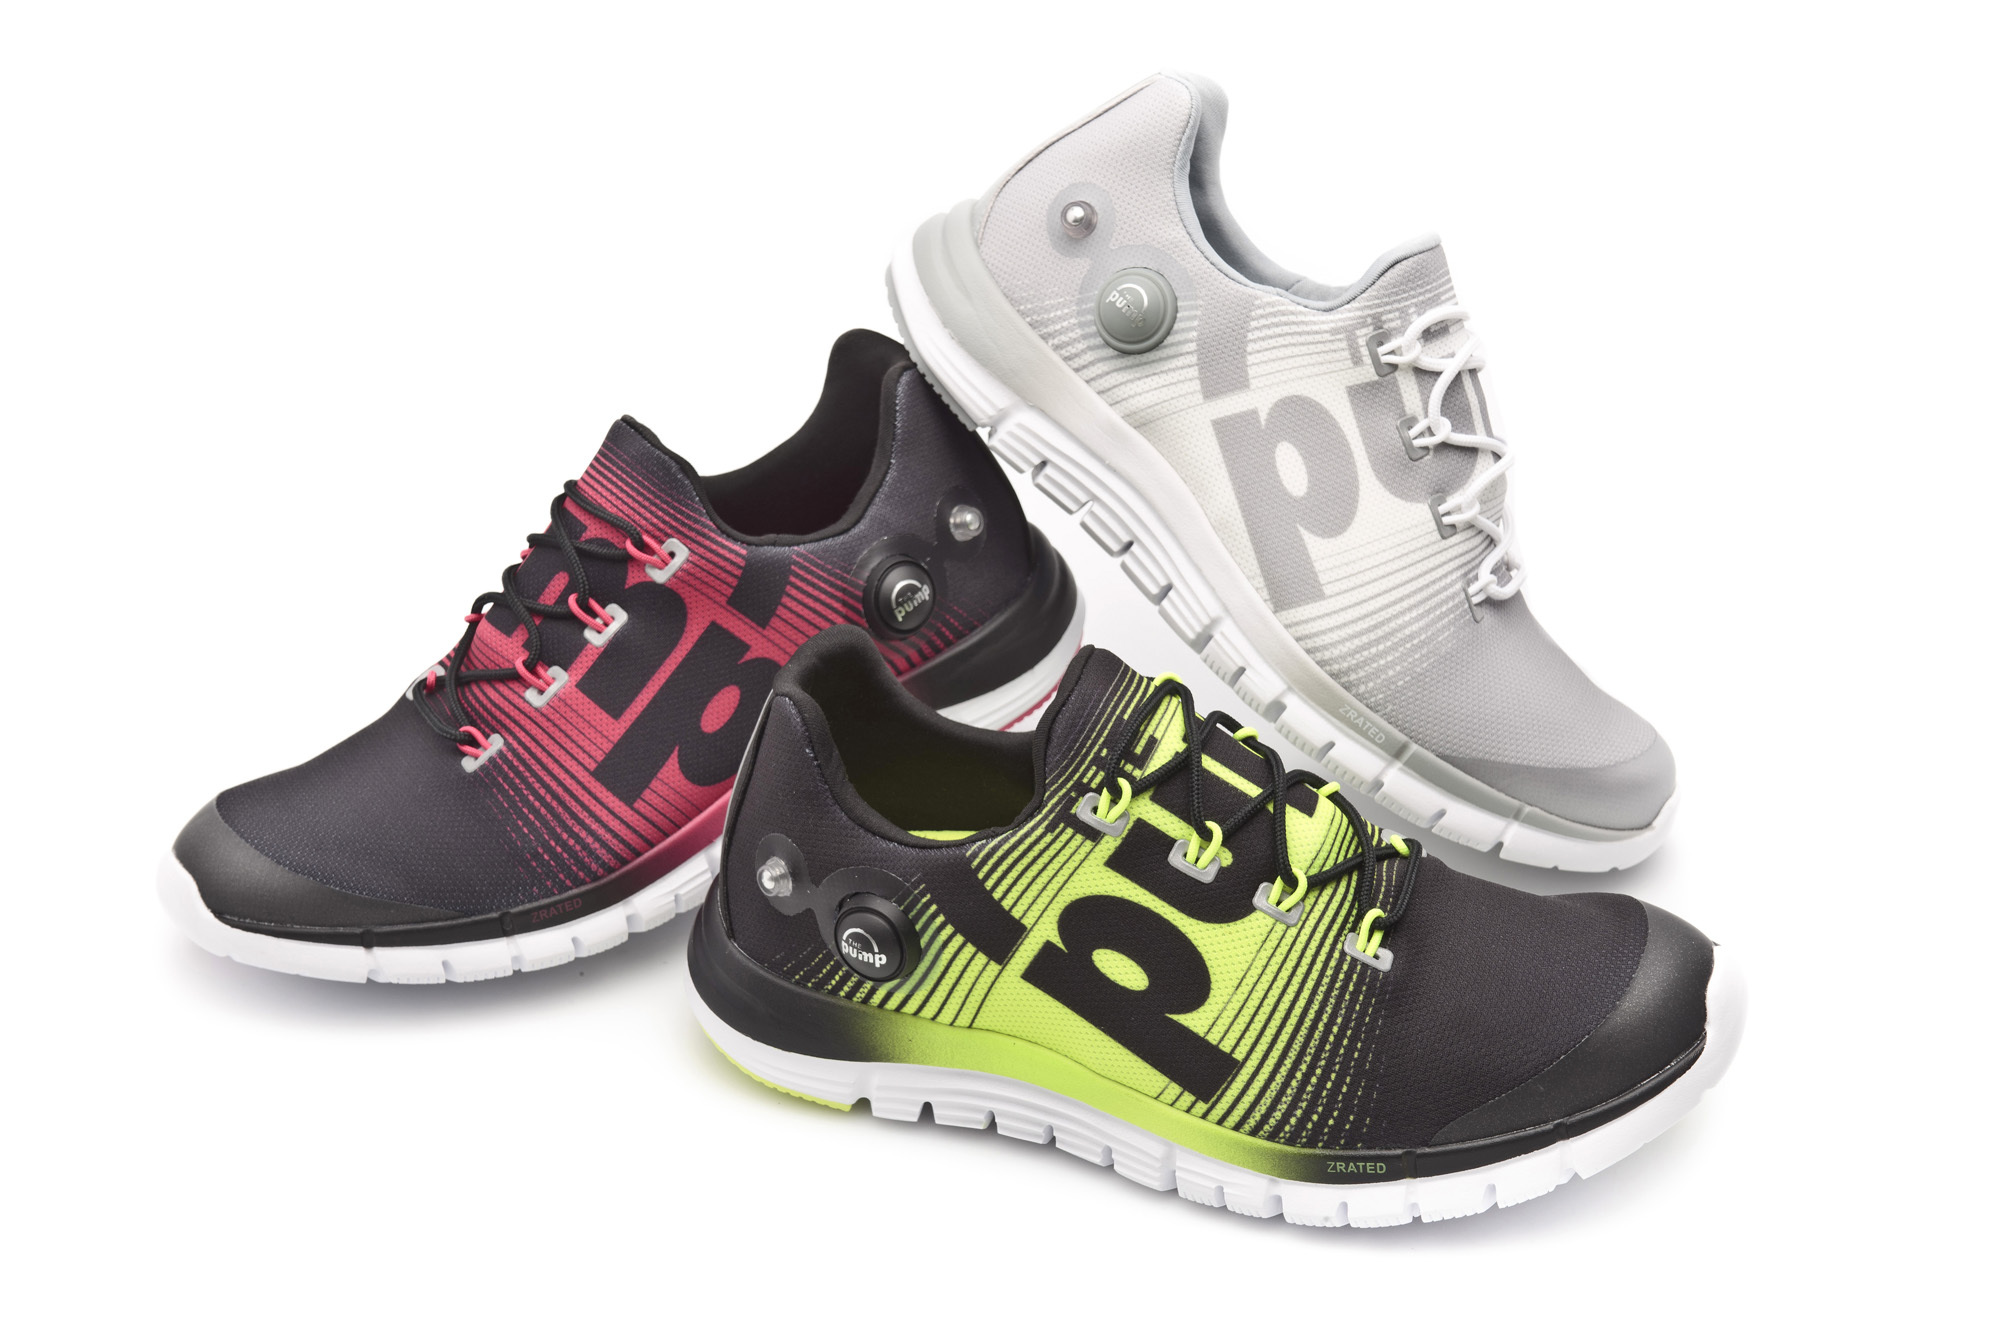 Reebok ZPump Fusion Revolutionizes Running with New Custom Fit Technology  f8076f87d